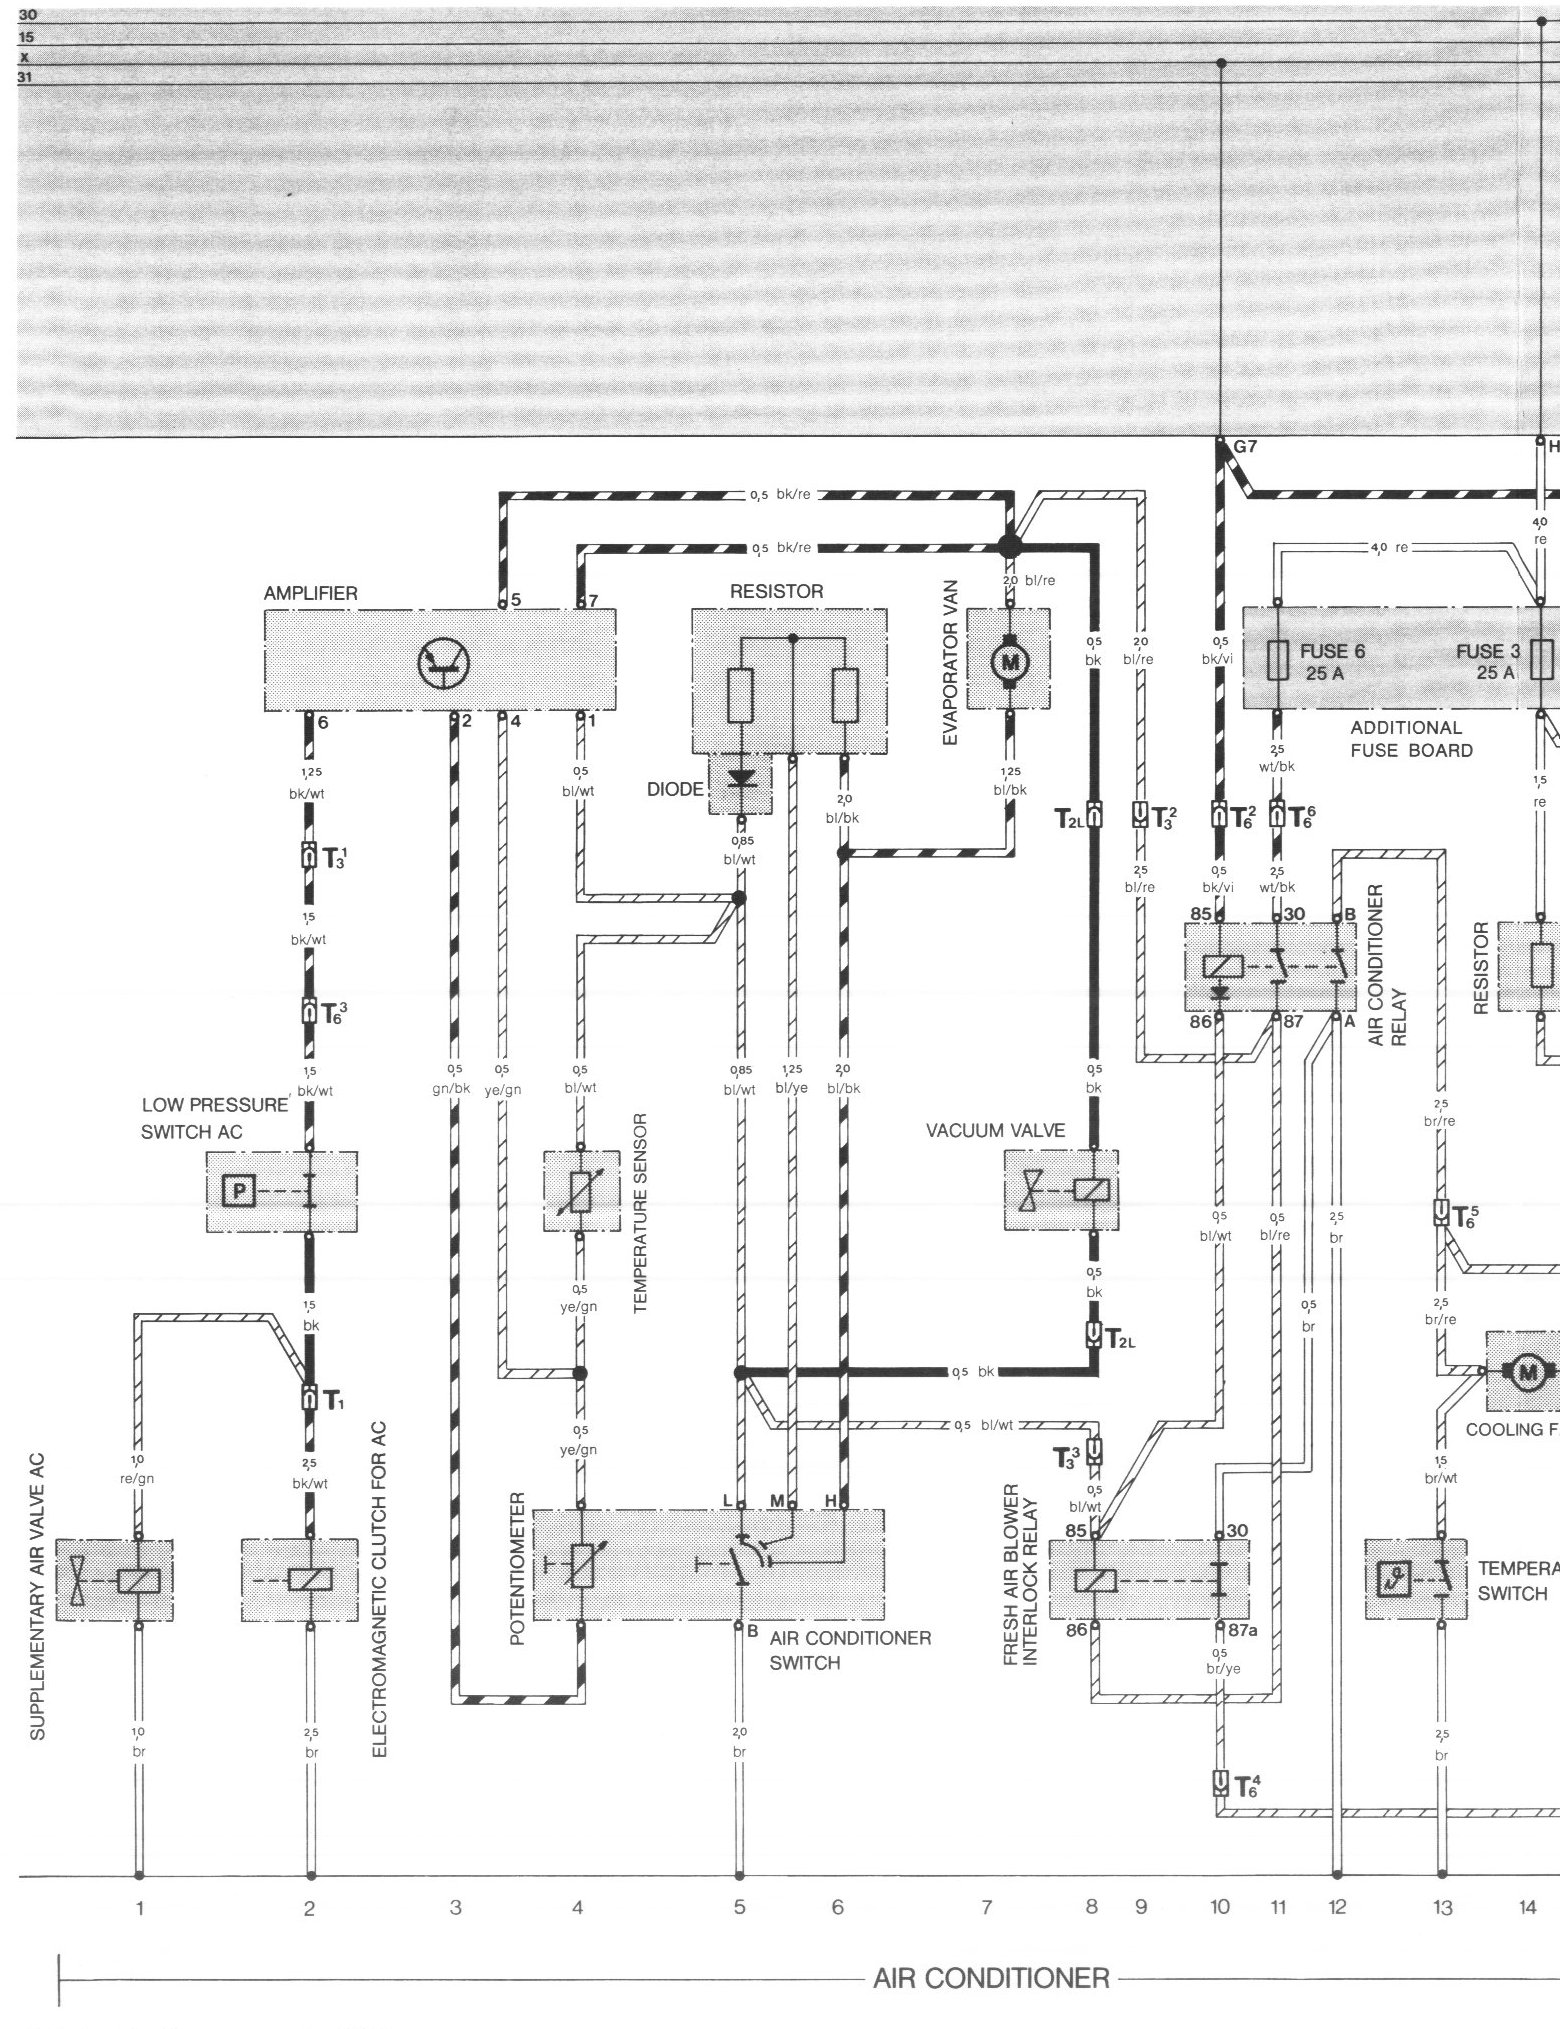 1987 Porsche 944 Fuse Box Diagram Wiring Diagrams Schema 1986 Bmw 325e Ac Schematics